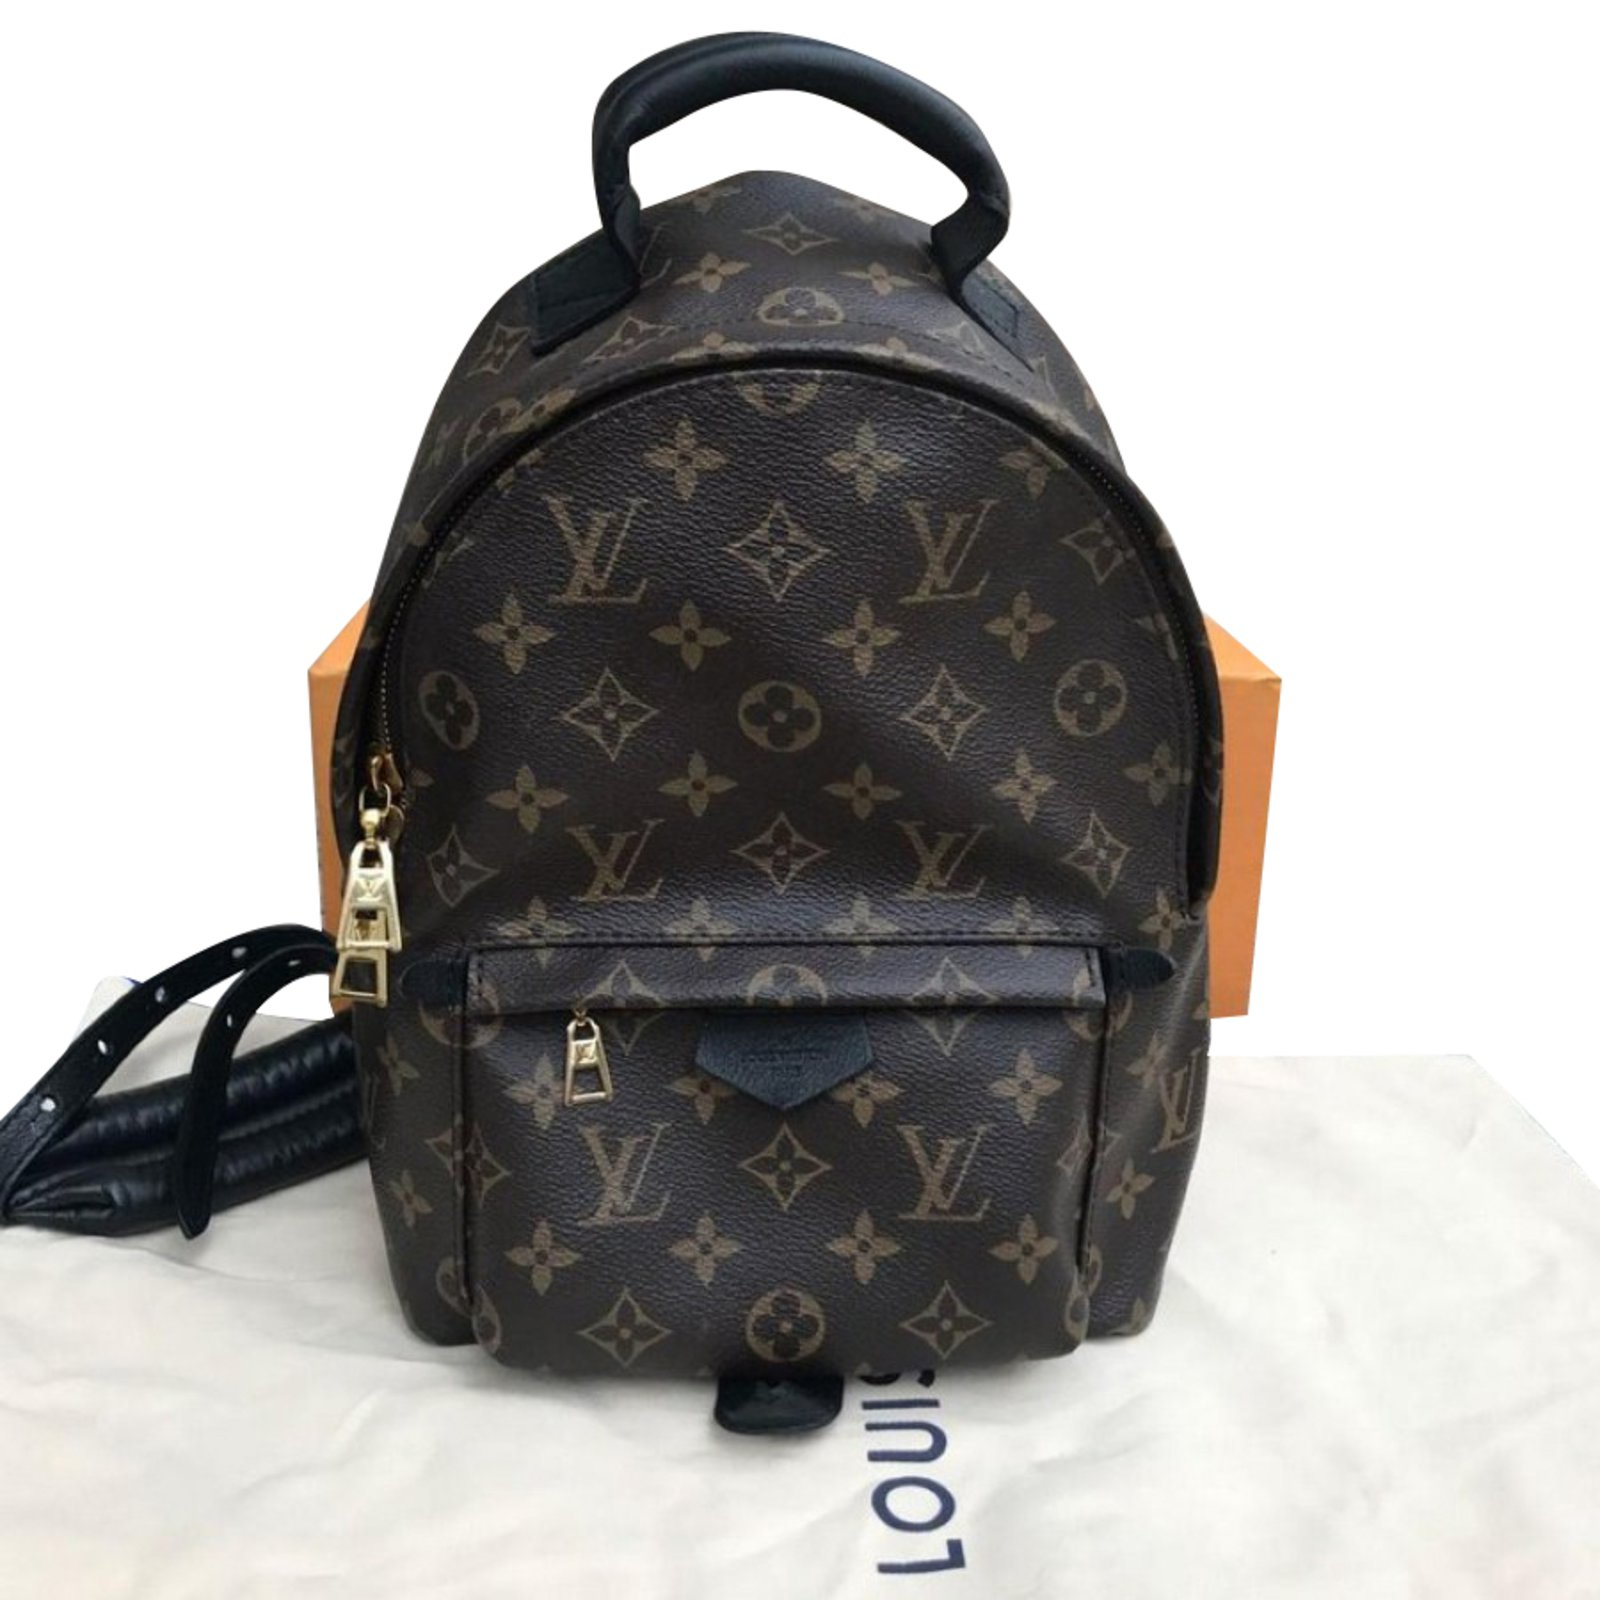 ... Louis Vuitton Palm springs backpack Backpacks Other Brown ref.55828 ... ca0671515e50f